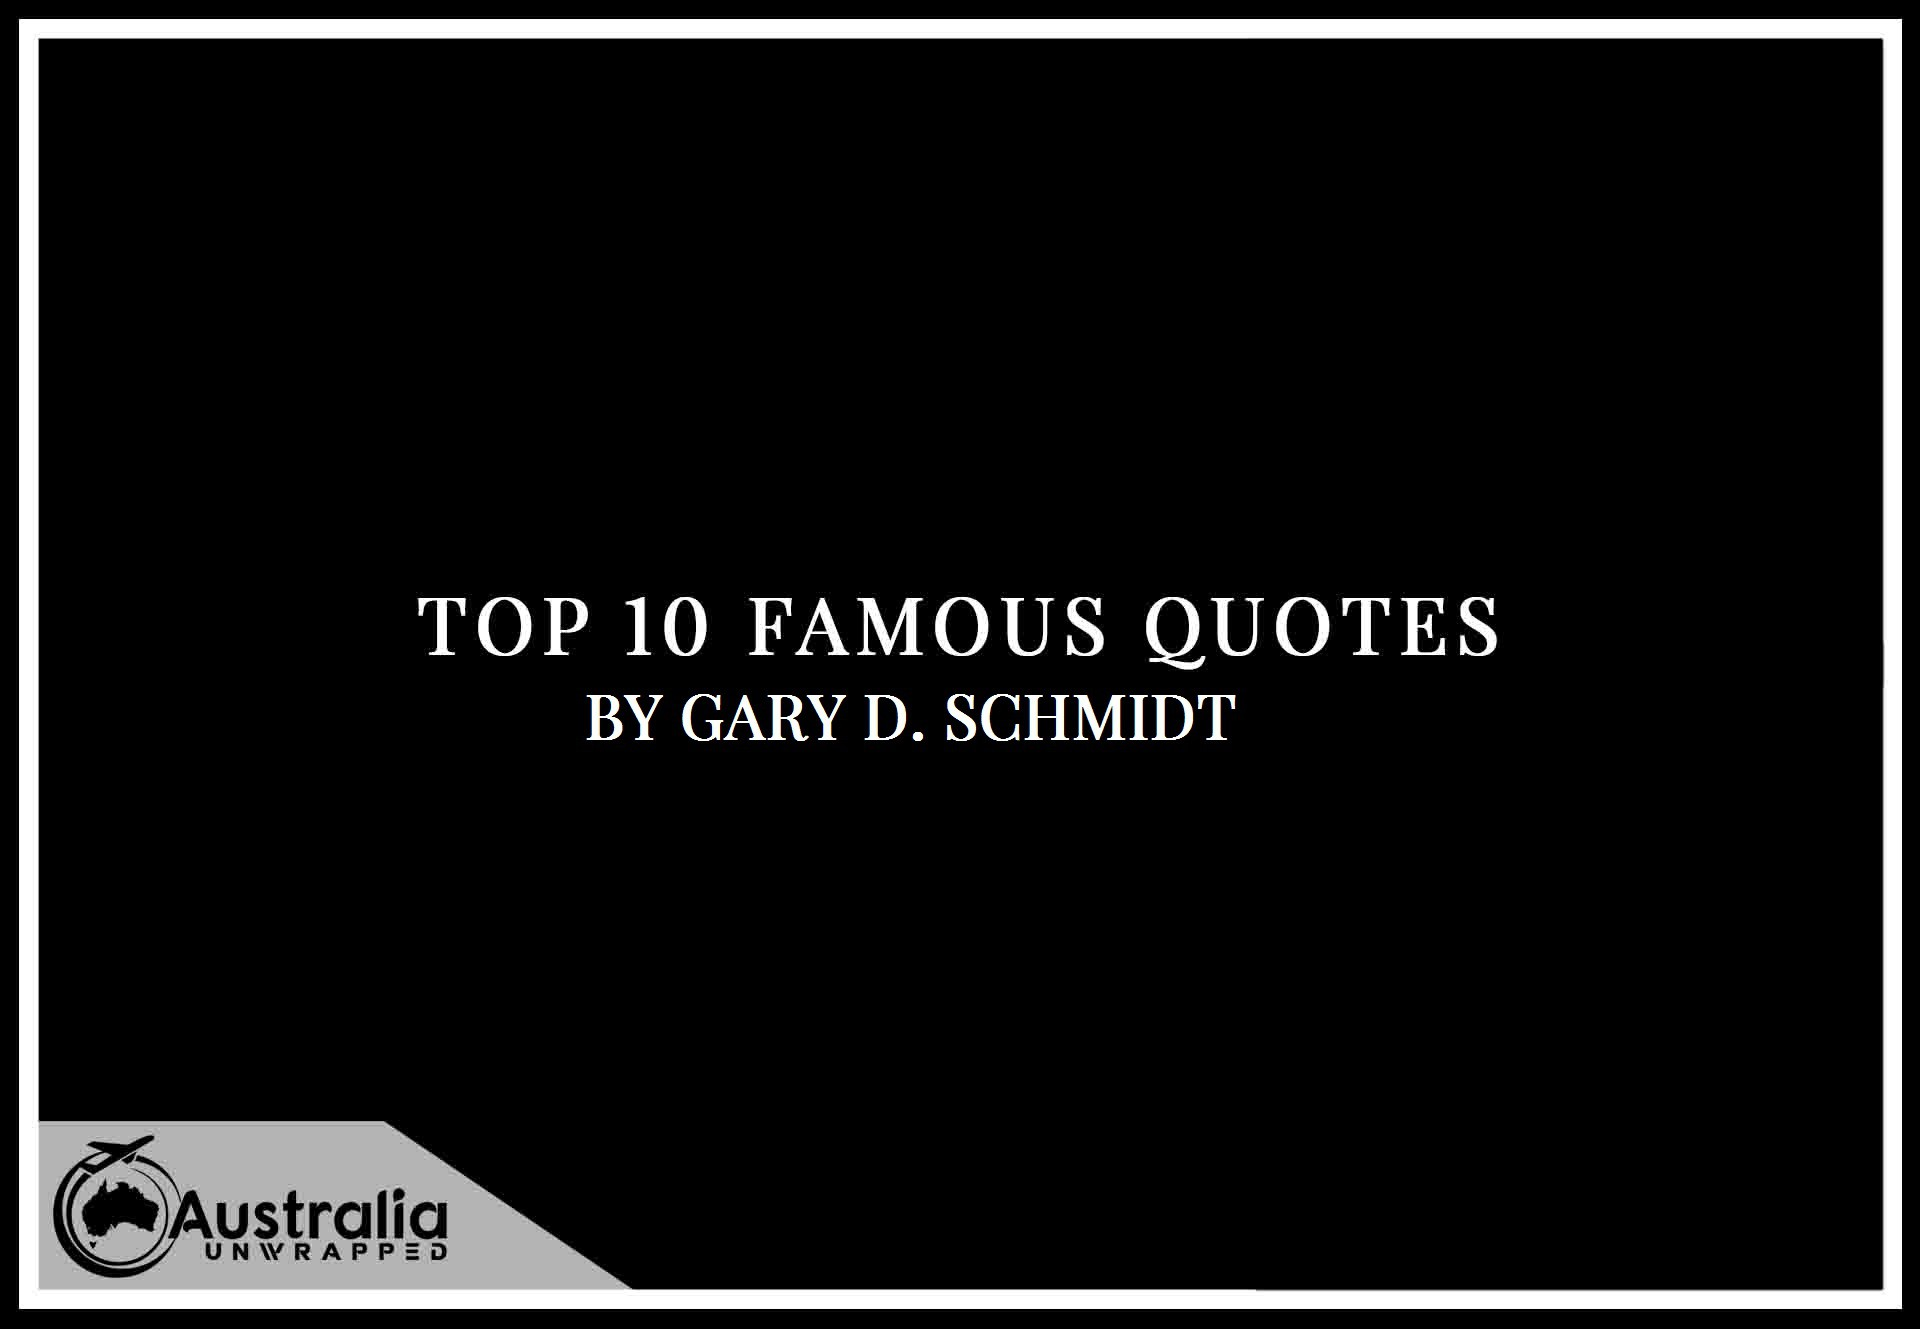 Gary D. Schmidt's Top 10 Popular and Famous Quotes